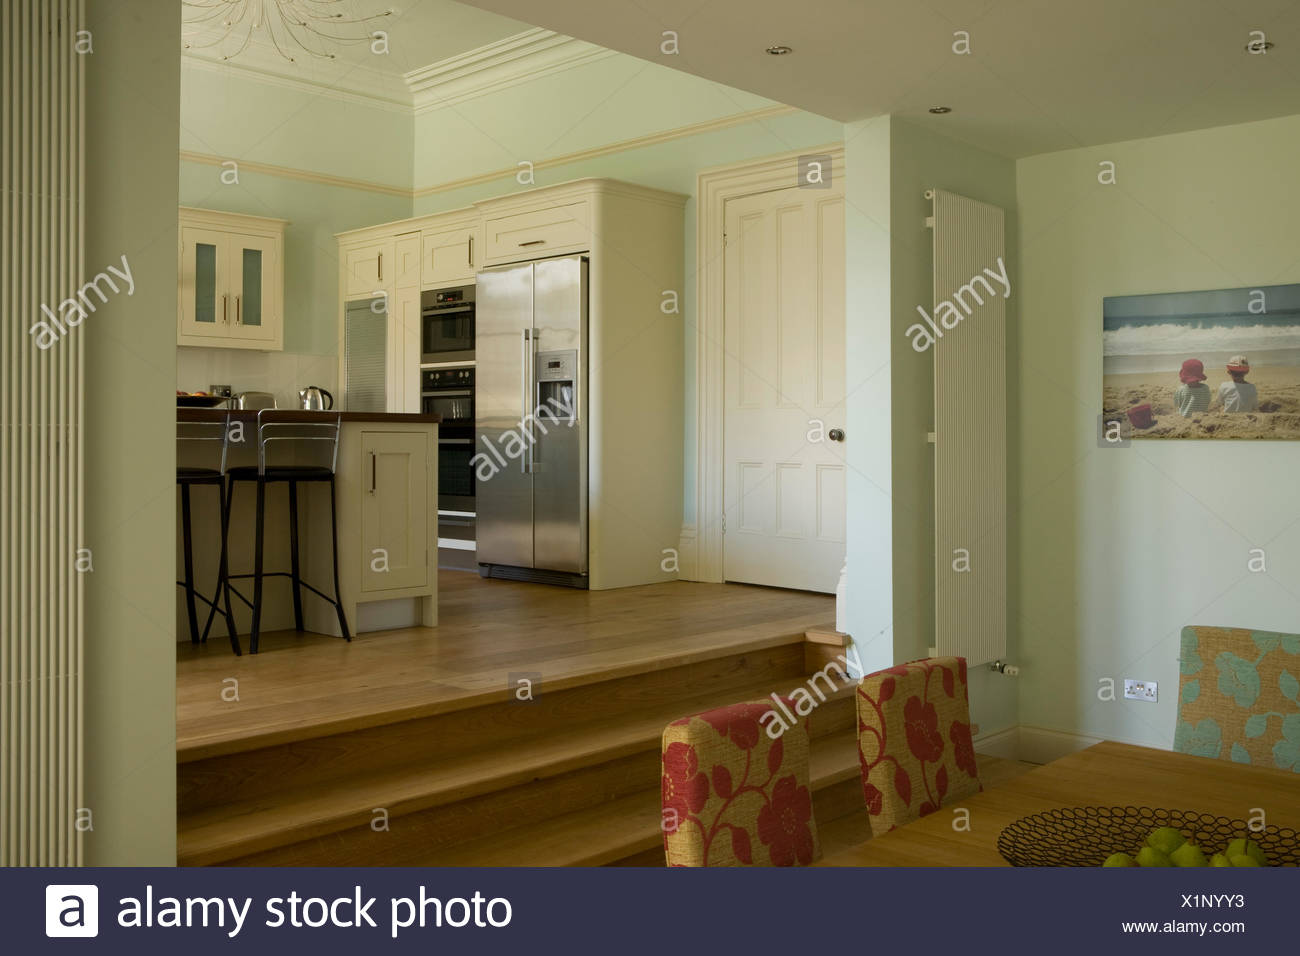 Split Level Room High Resolution Stock Photography And Images Alamy